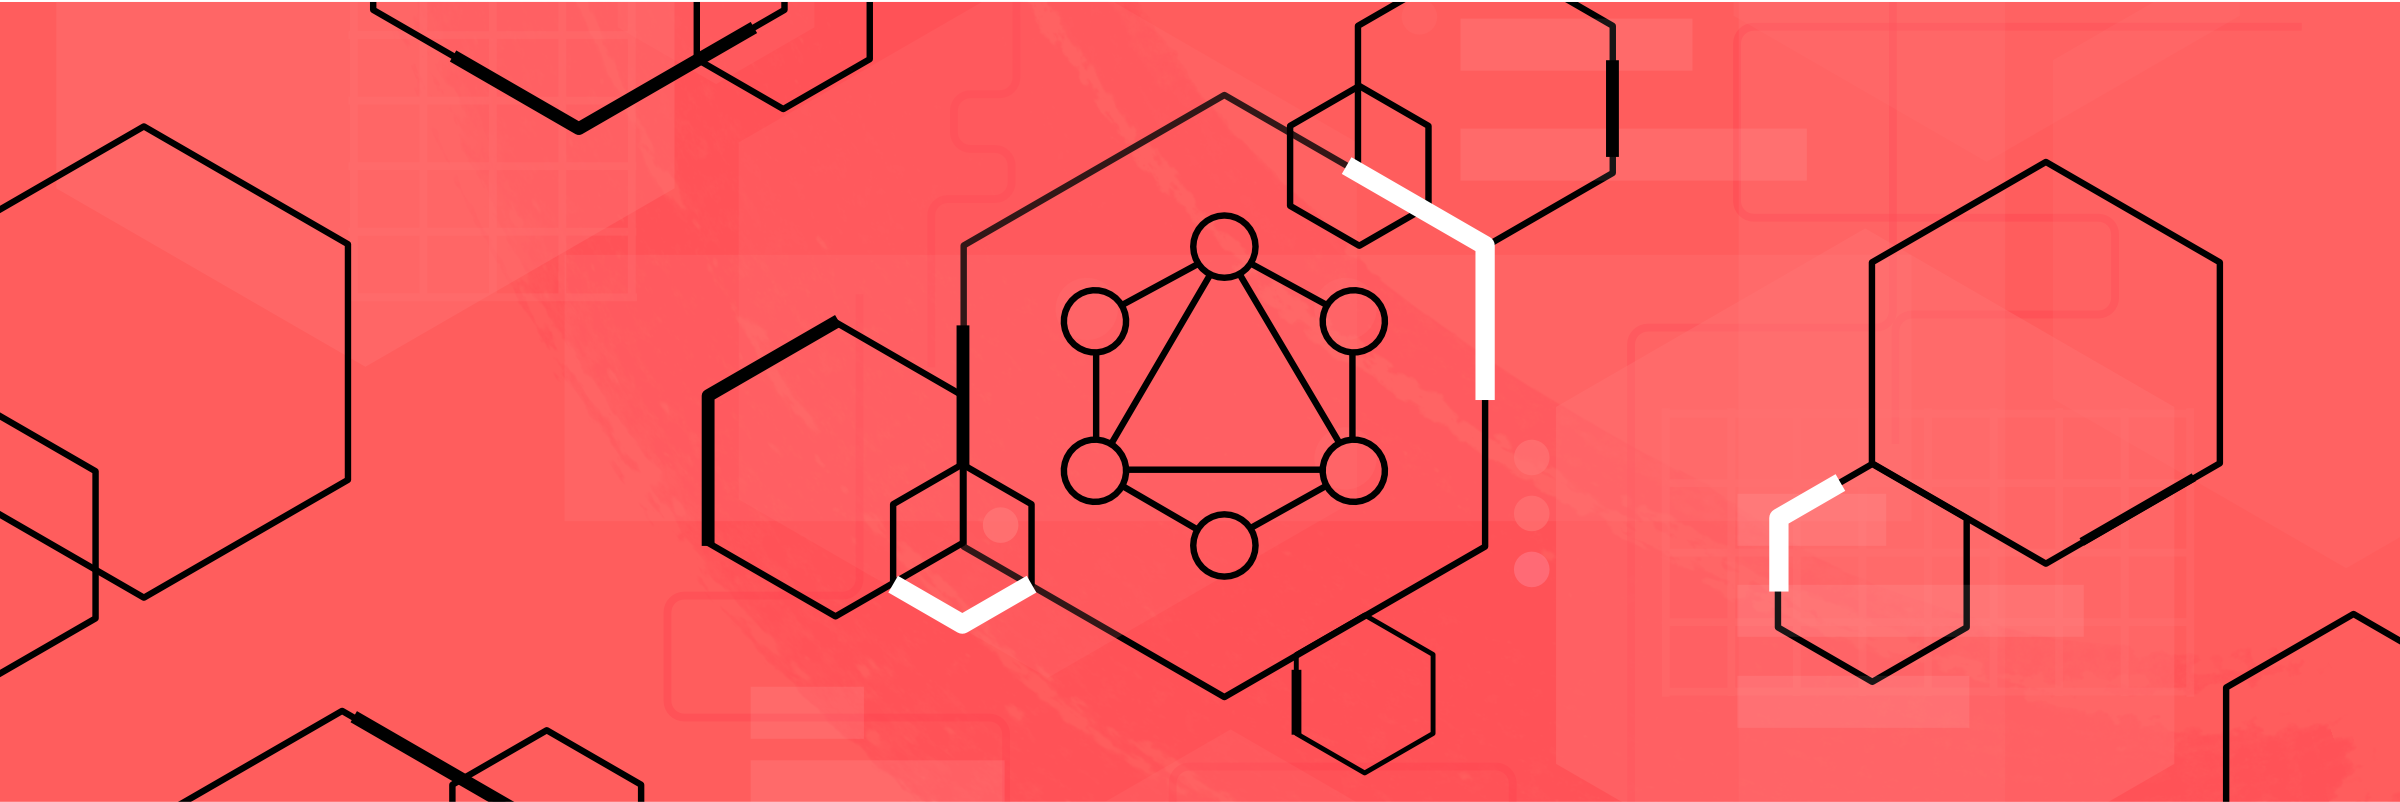 What is GraphQL and why Facebook felt the need to build it?